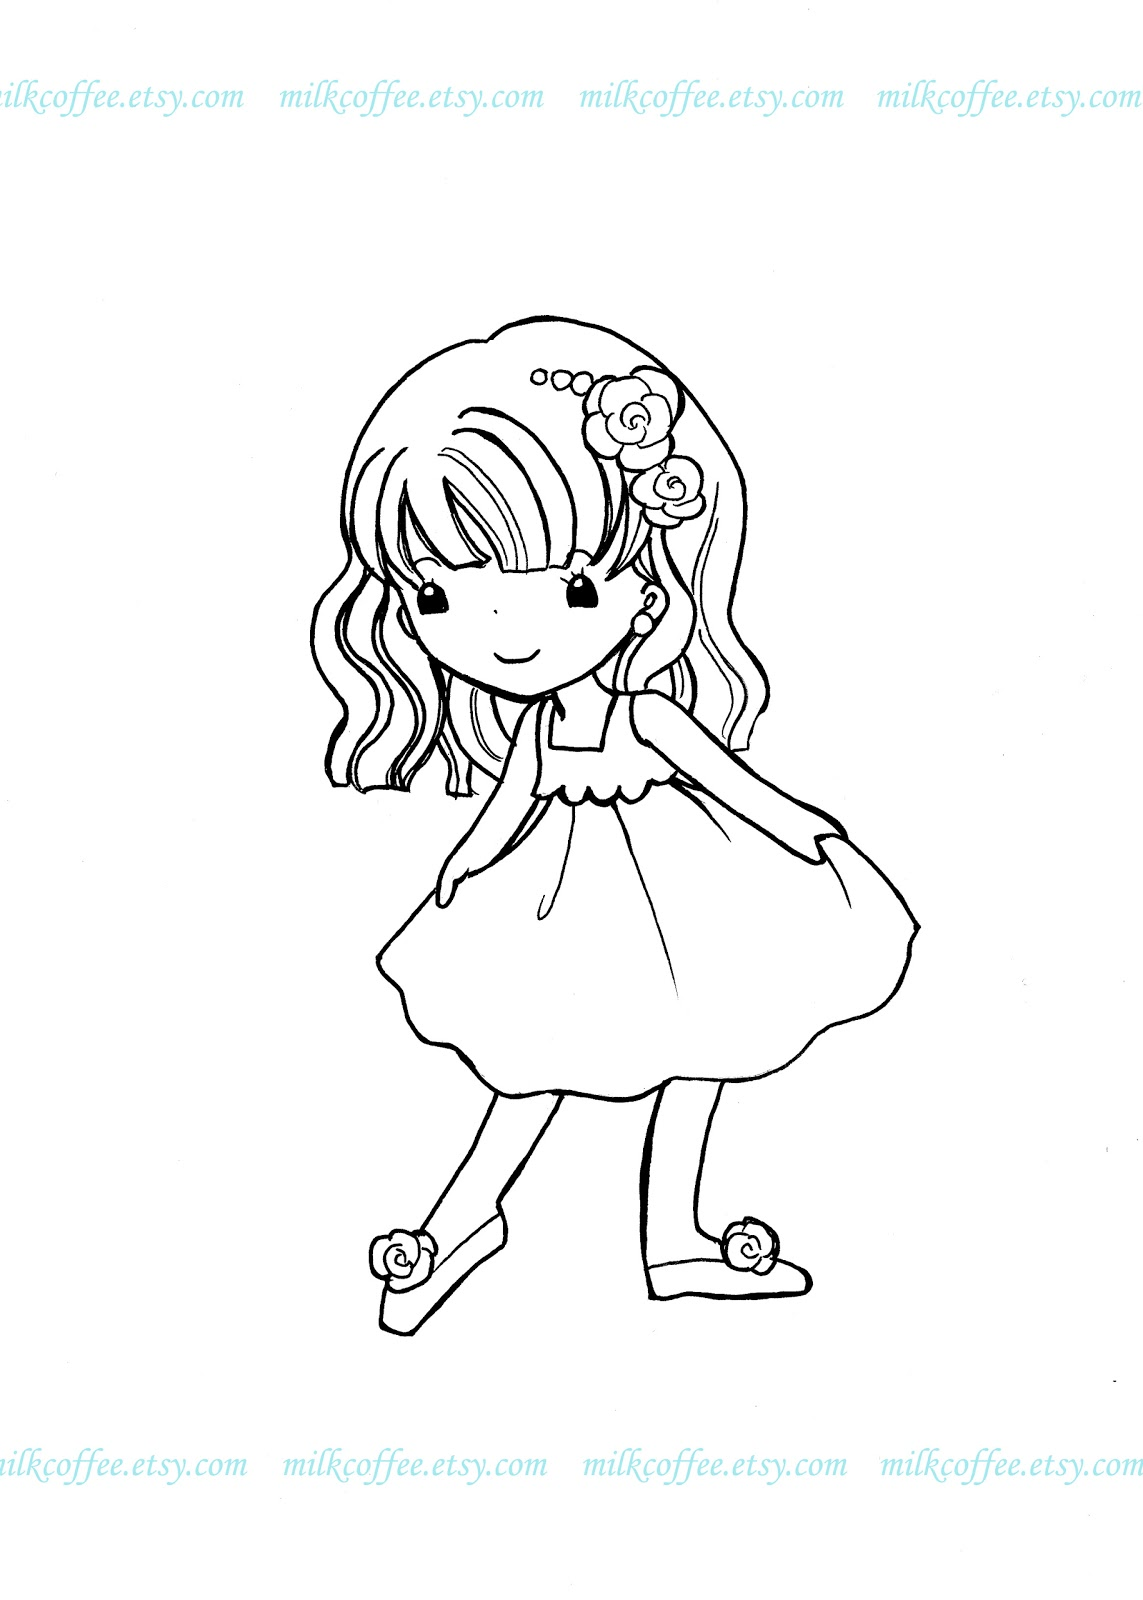 Human Body Outline Drawing Coloring Pages moreover Coloriage De Petite Fille further Subaru Legacy 2015 furthermore Front Silkscreen Pony Logo Mpn Fd 3 further Ironman 2 Coloring Pages. on pony car